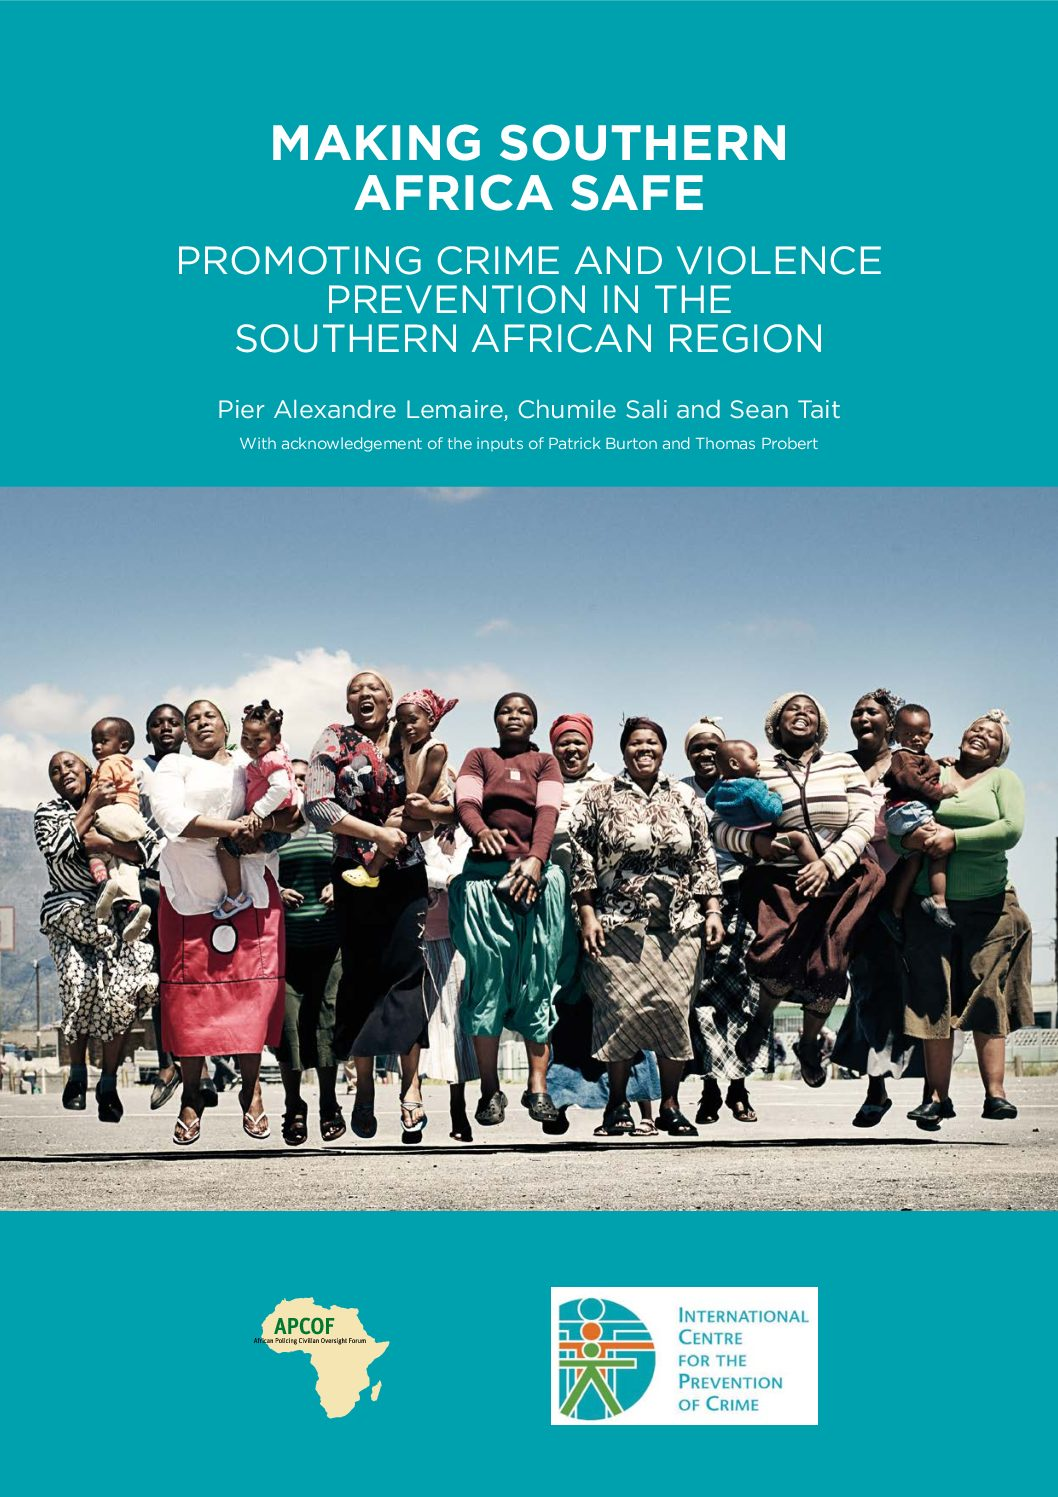 apcof-research-28-crime-prevention-in-southern-africa-03b3